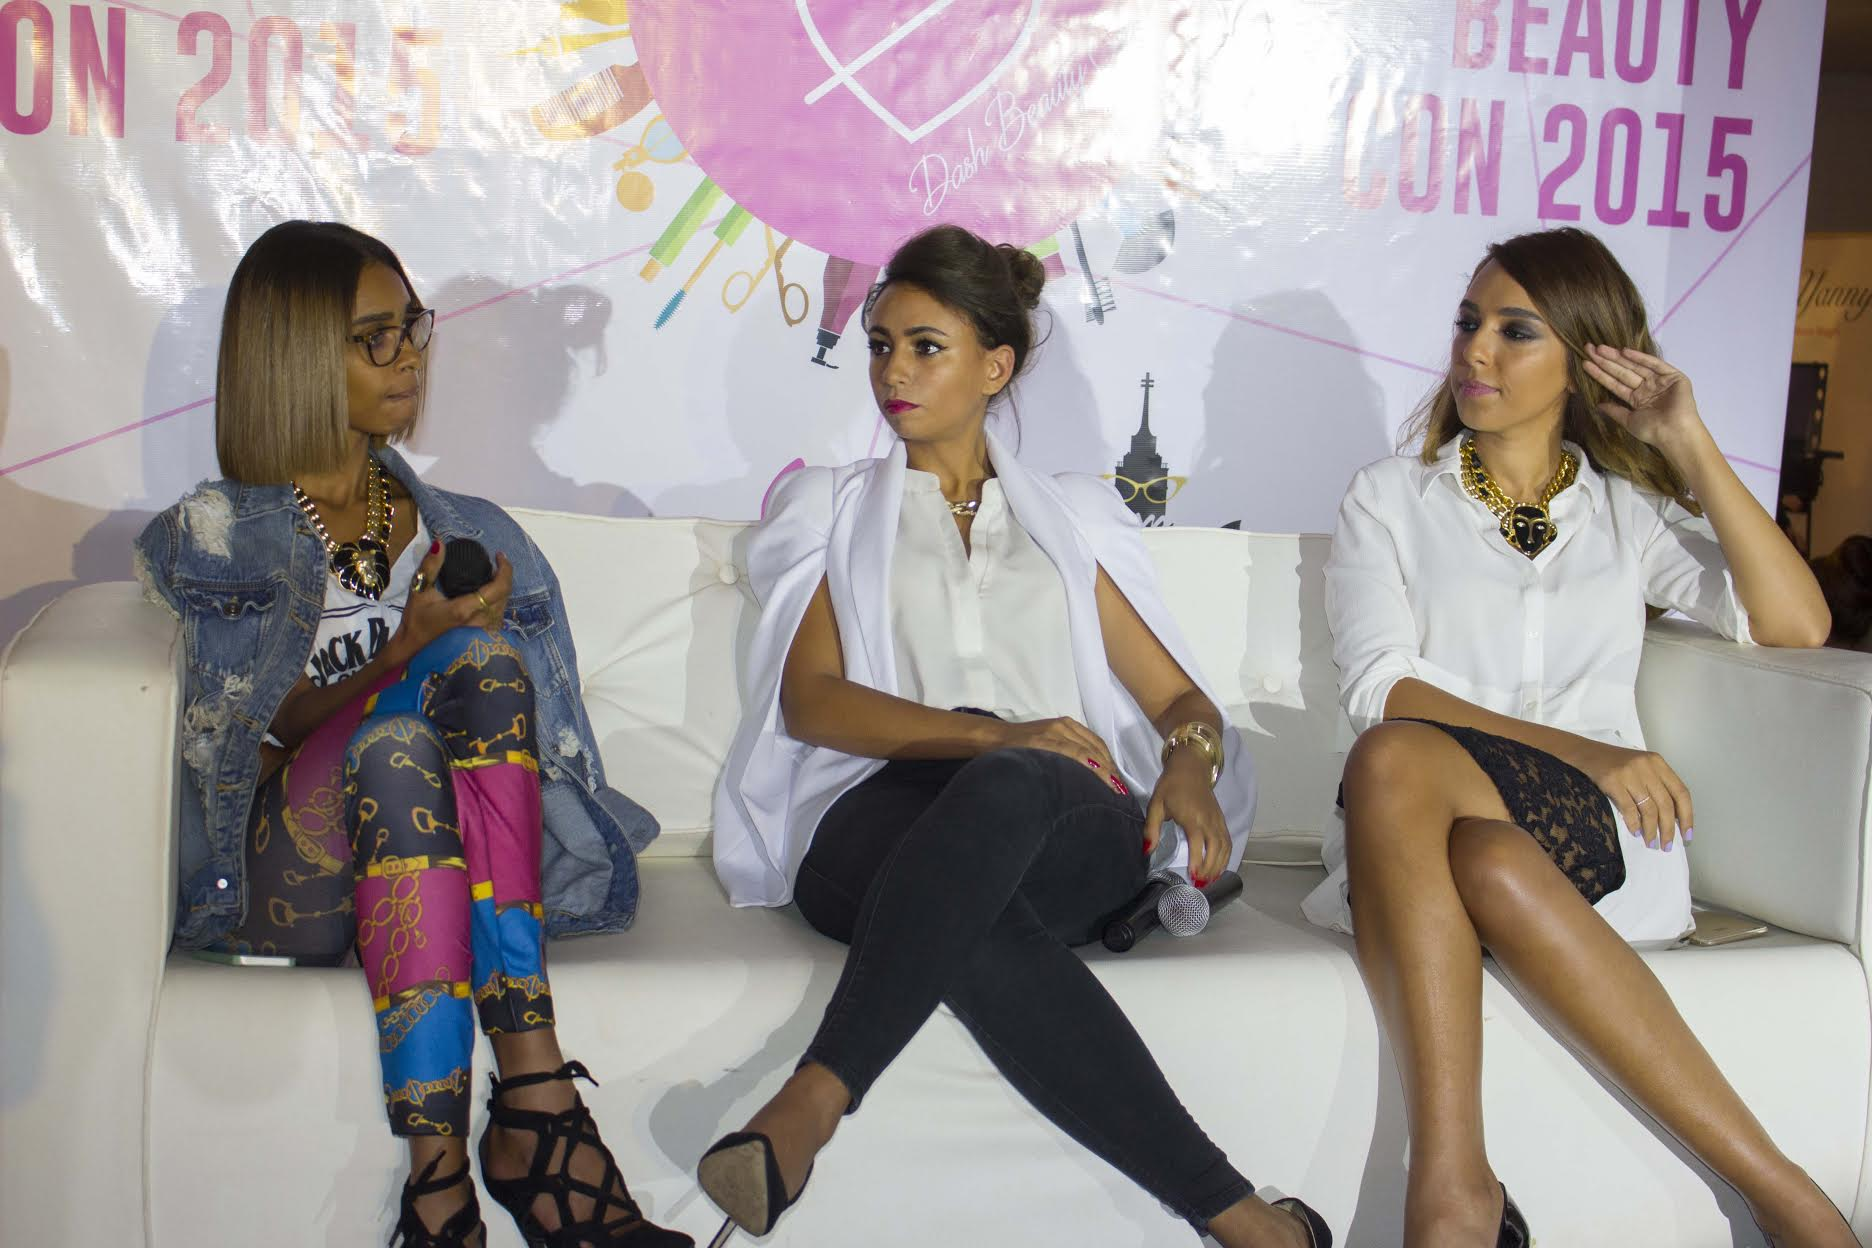 Stylists and influencers Gehad Abd Ellah, Berna Ibrahim and Layla Youssef discussing fashion and trends in Egypt (DNE Photo)